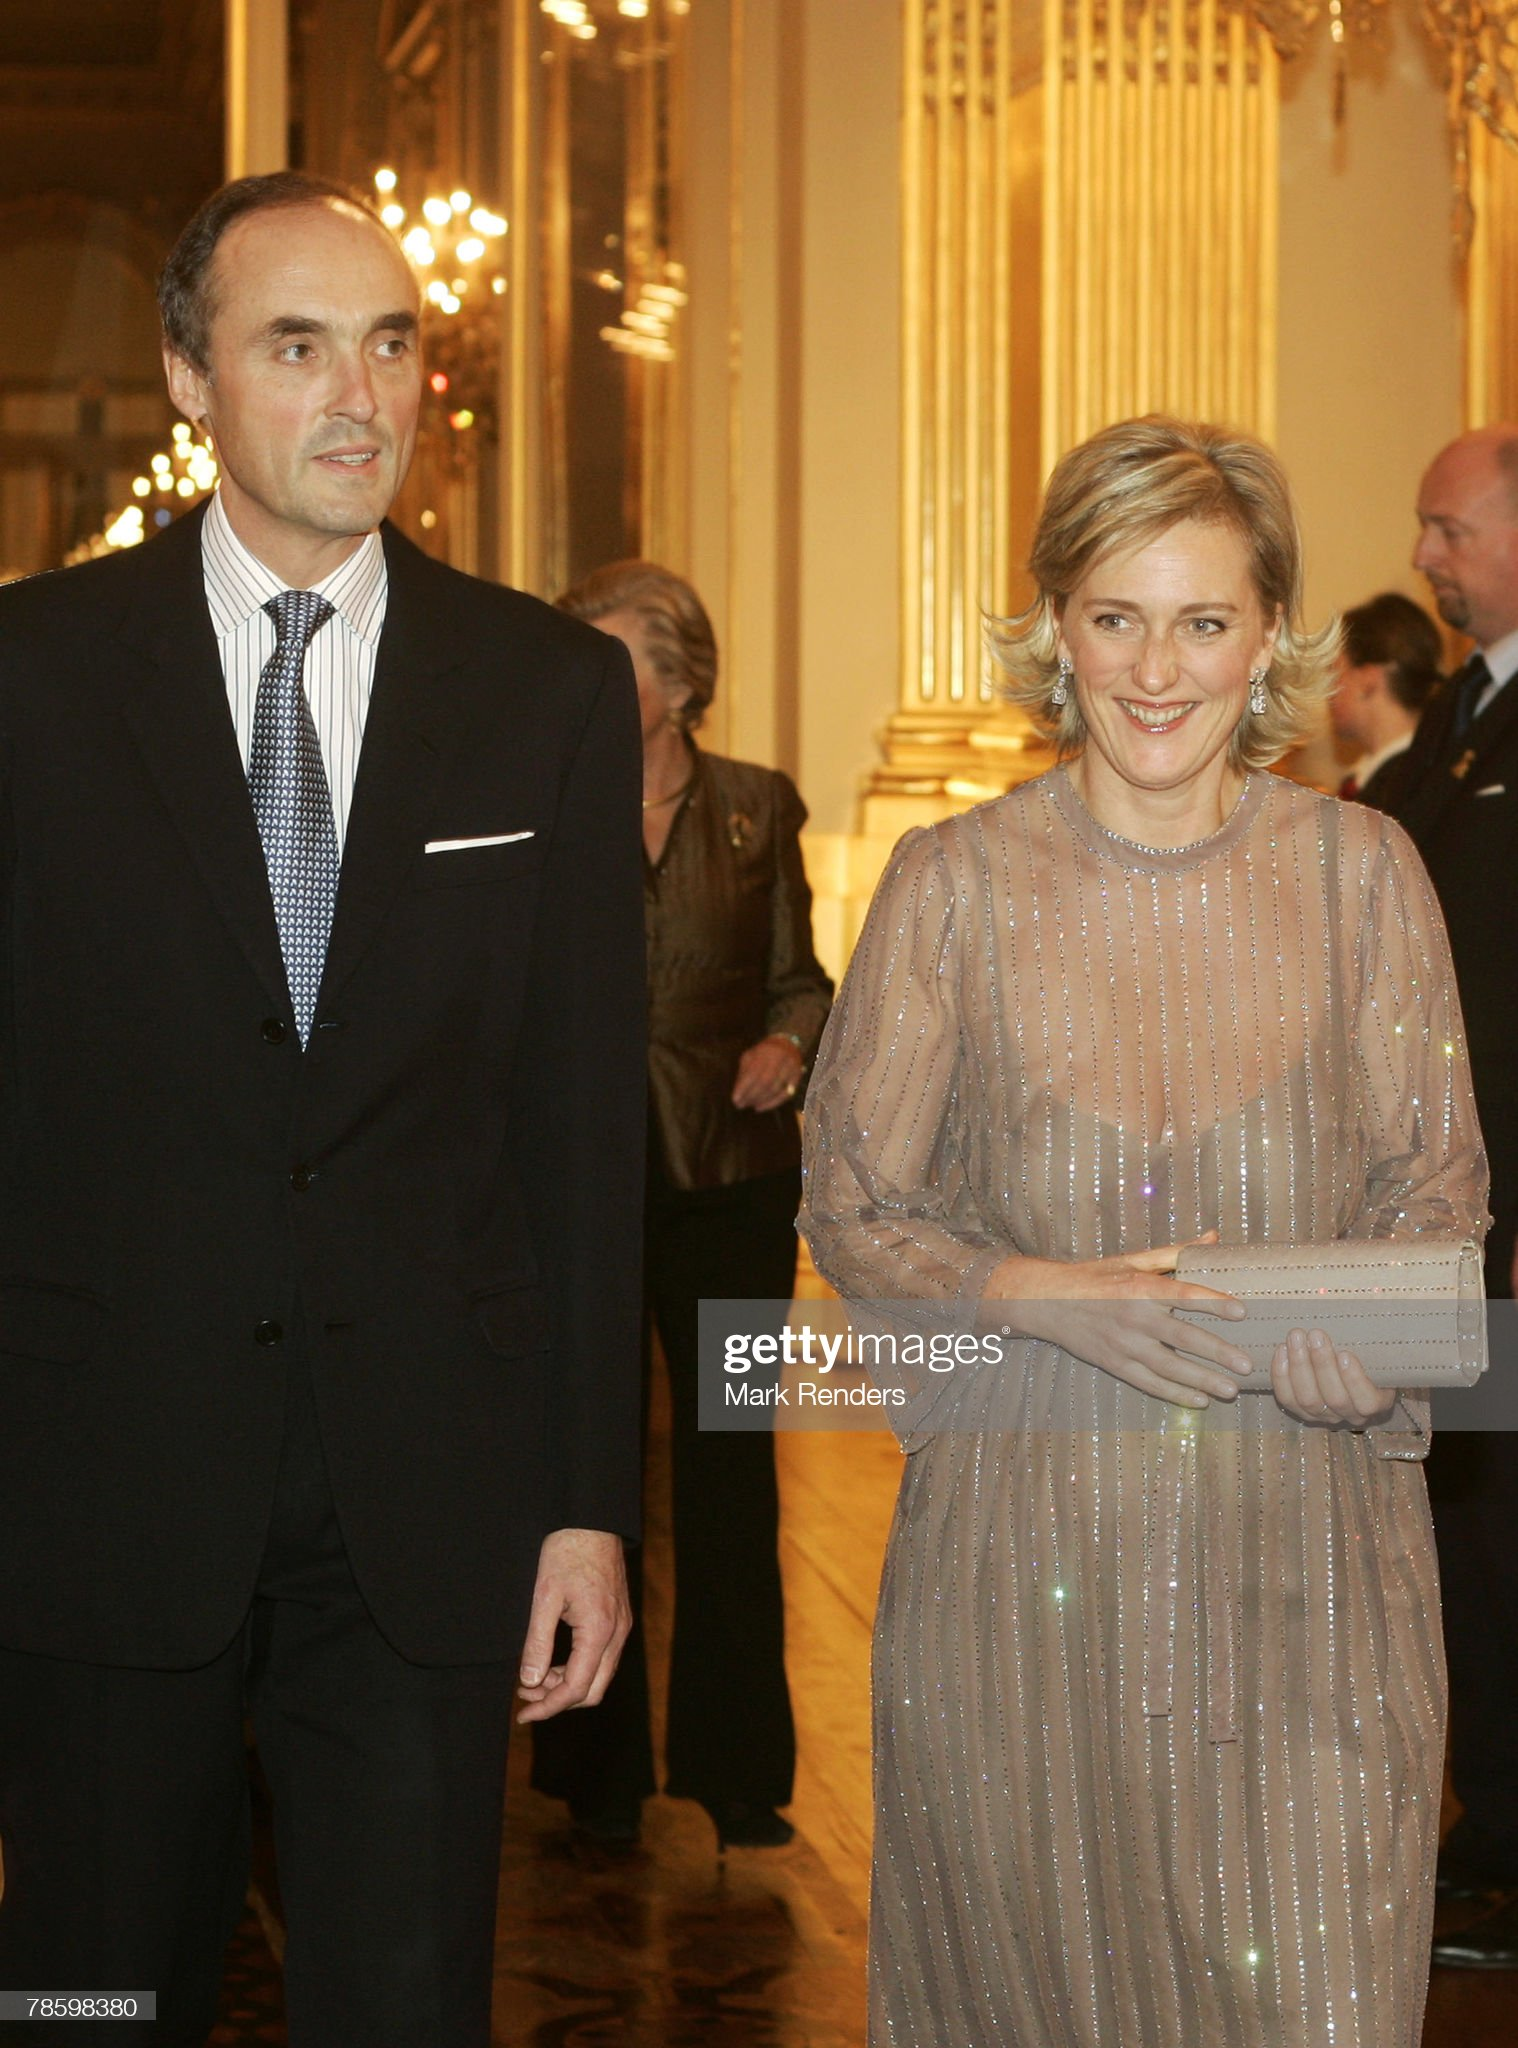 Belgium Royals Attend A Christmas Concert At The Royal Palace : News Photo